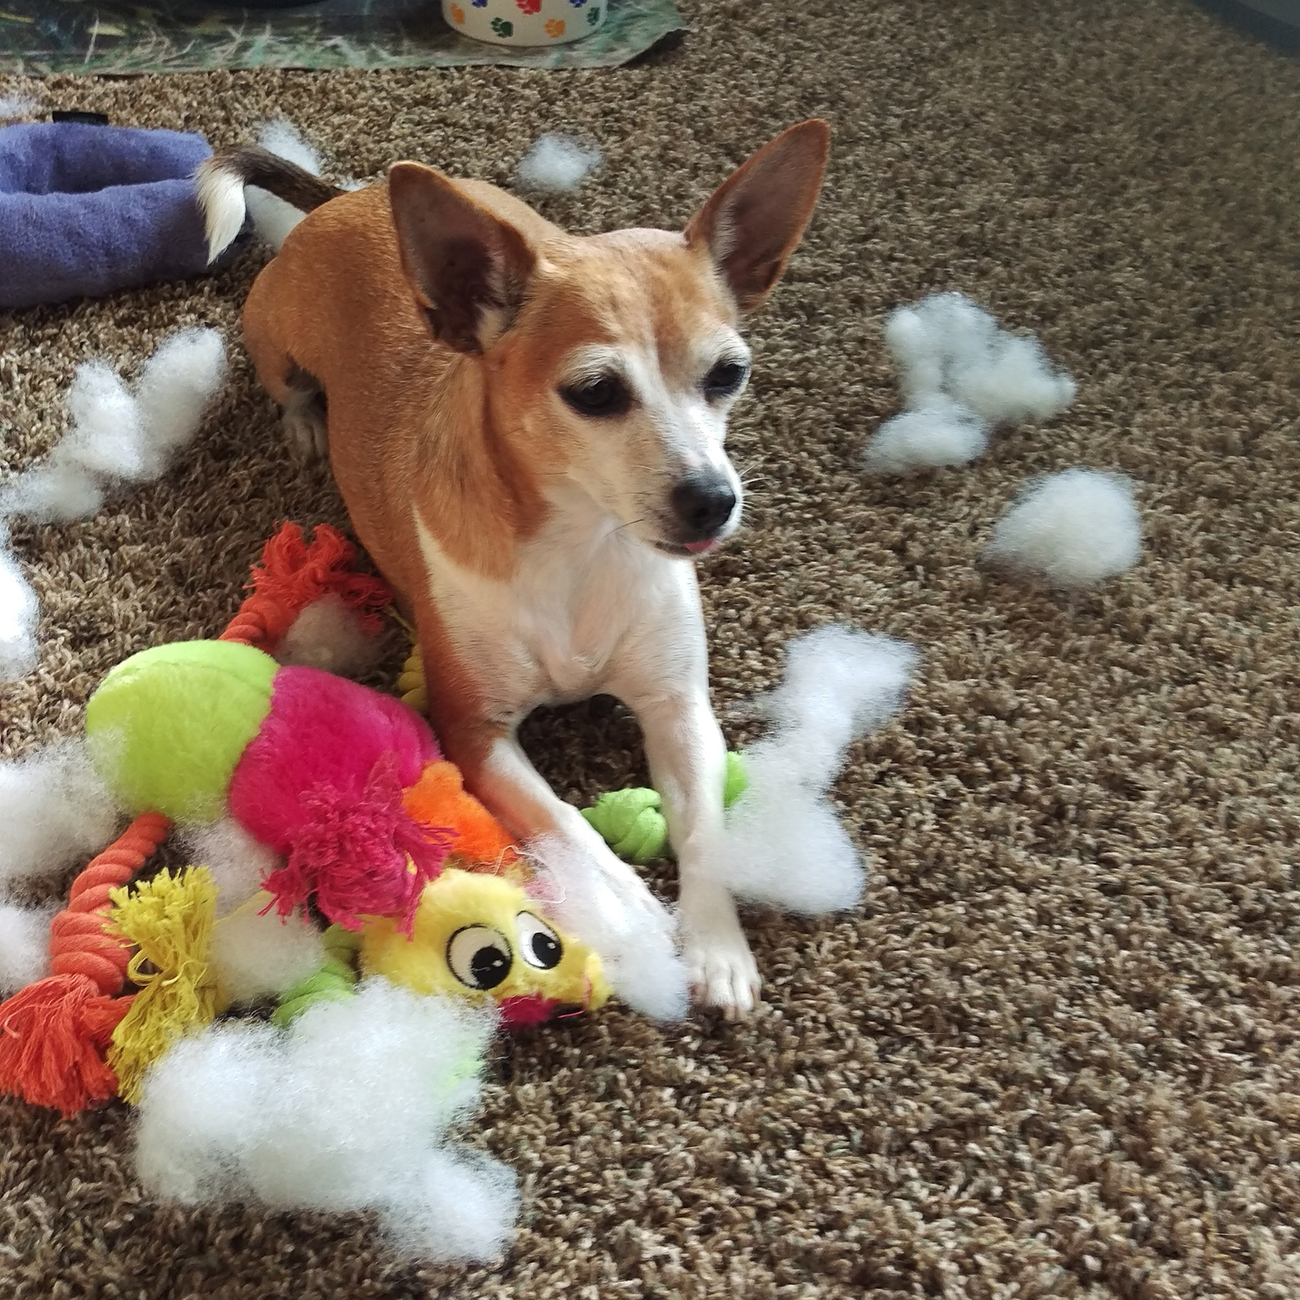 Small dog lays on carpet surrounded by torn up dog toys and their fluff